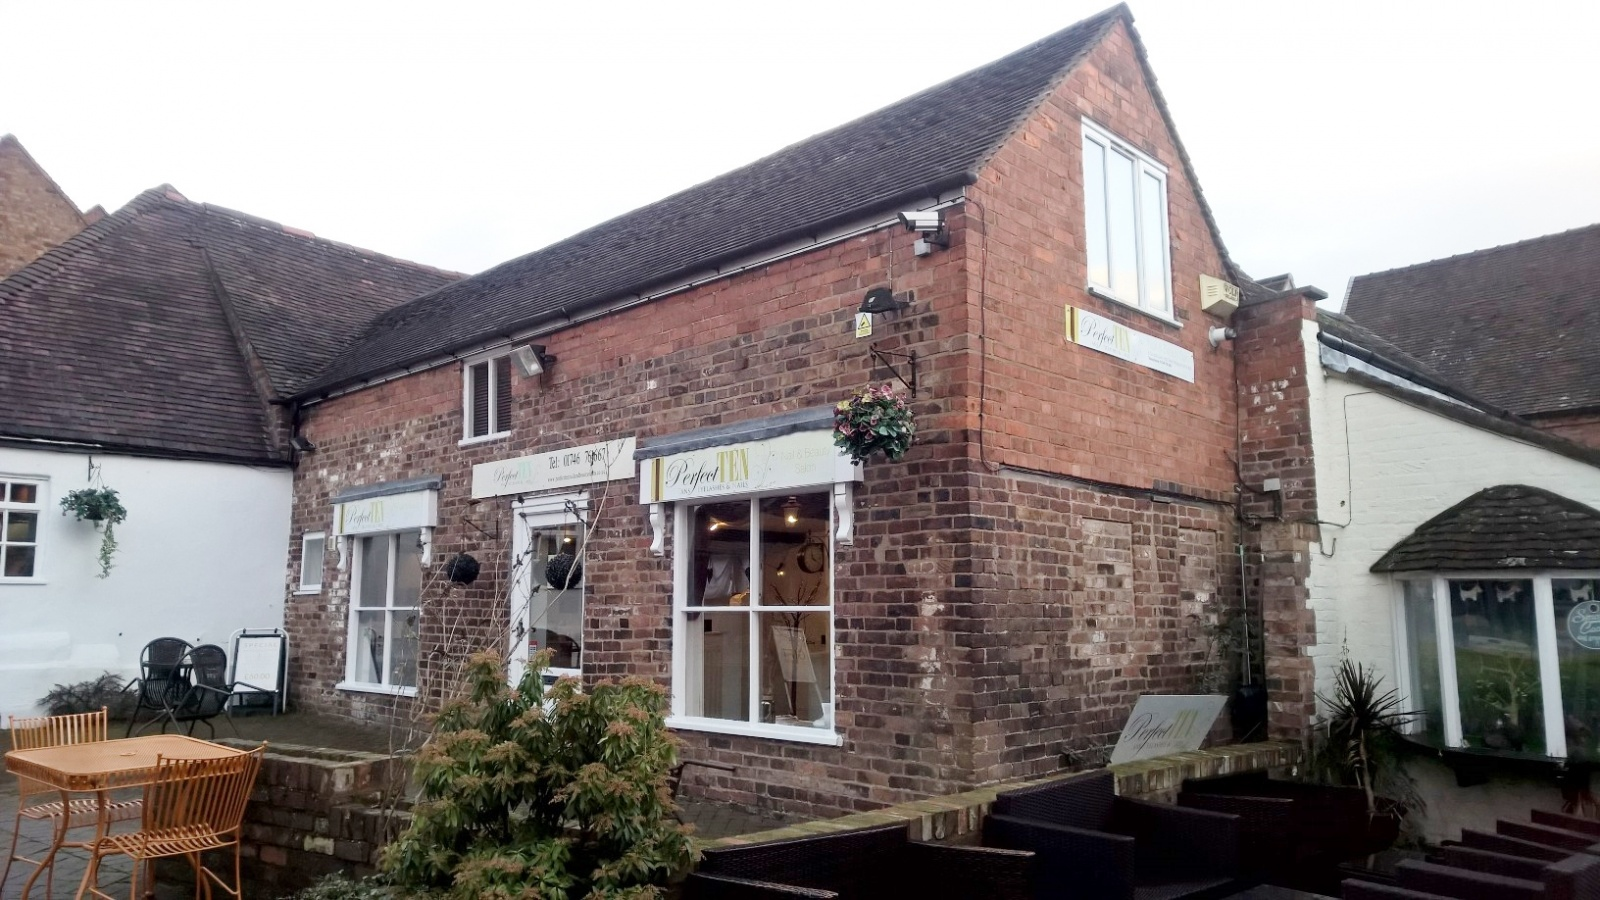 Unit 5, Central Court Shopping Centre, High Street, Bridgnorth, Shropshire